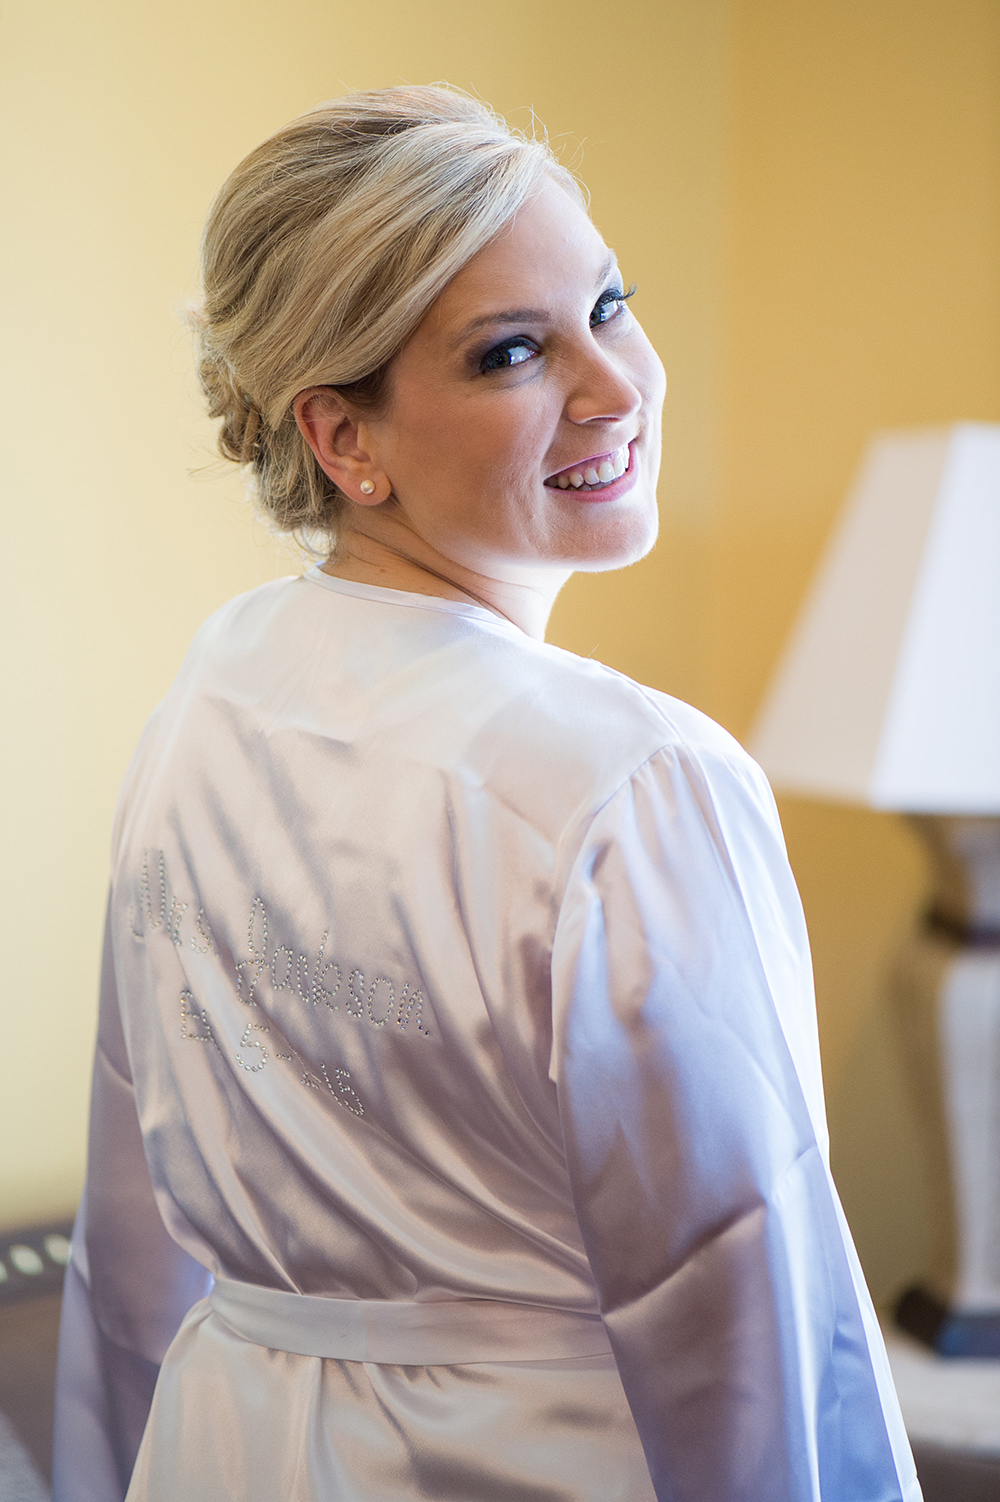 Elegant Summer Wedding in Florida - Bride Getting Ready in her personalized satin robe / Séverine Photography